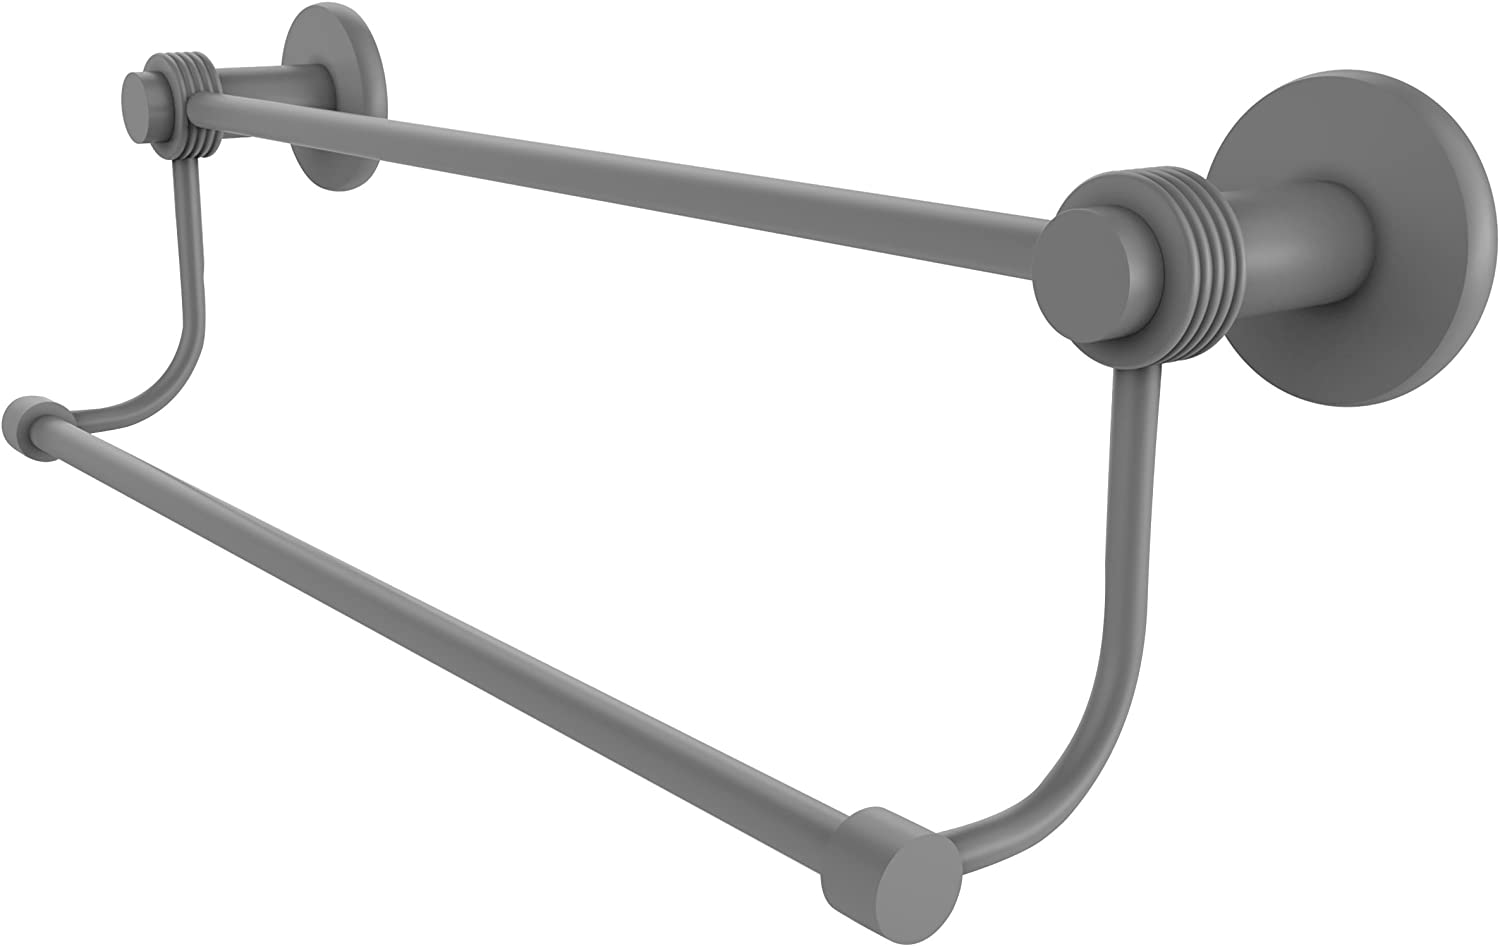 Allied Brass Mercury Collection 24 Inch Double Towel Bar with Groovy Accents, 9072G 24-GYM